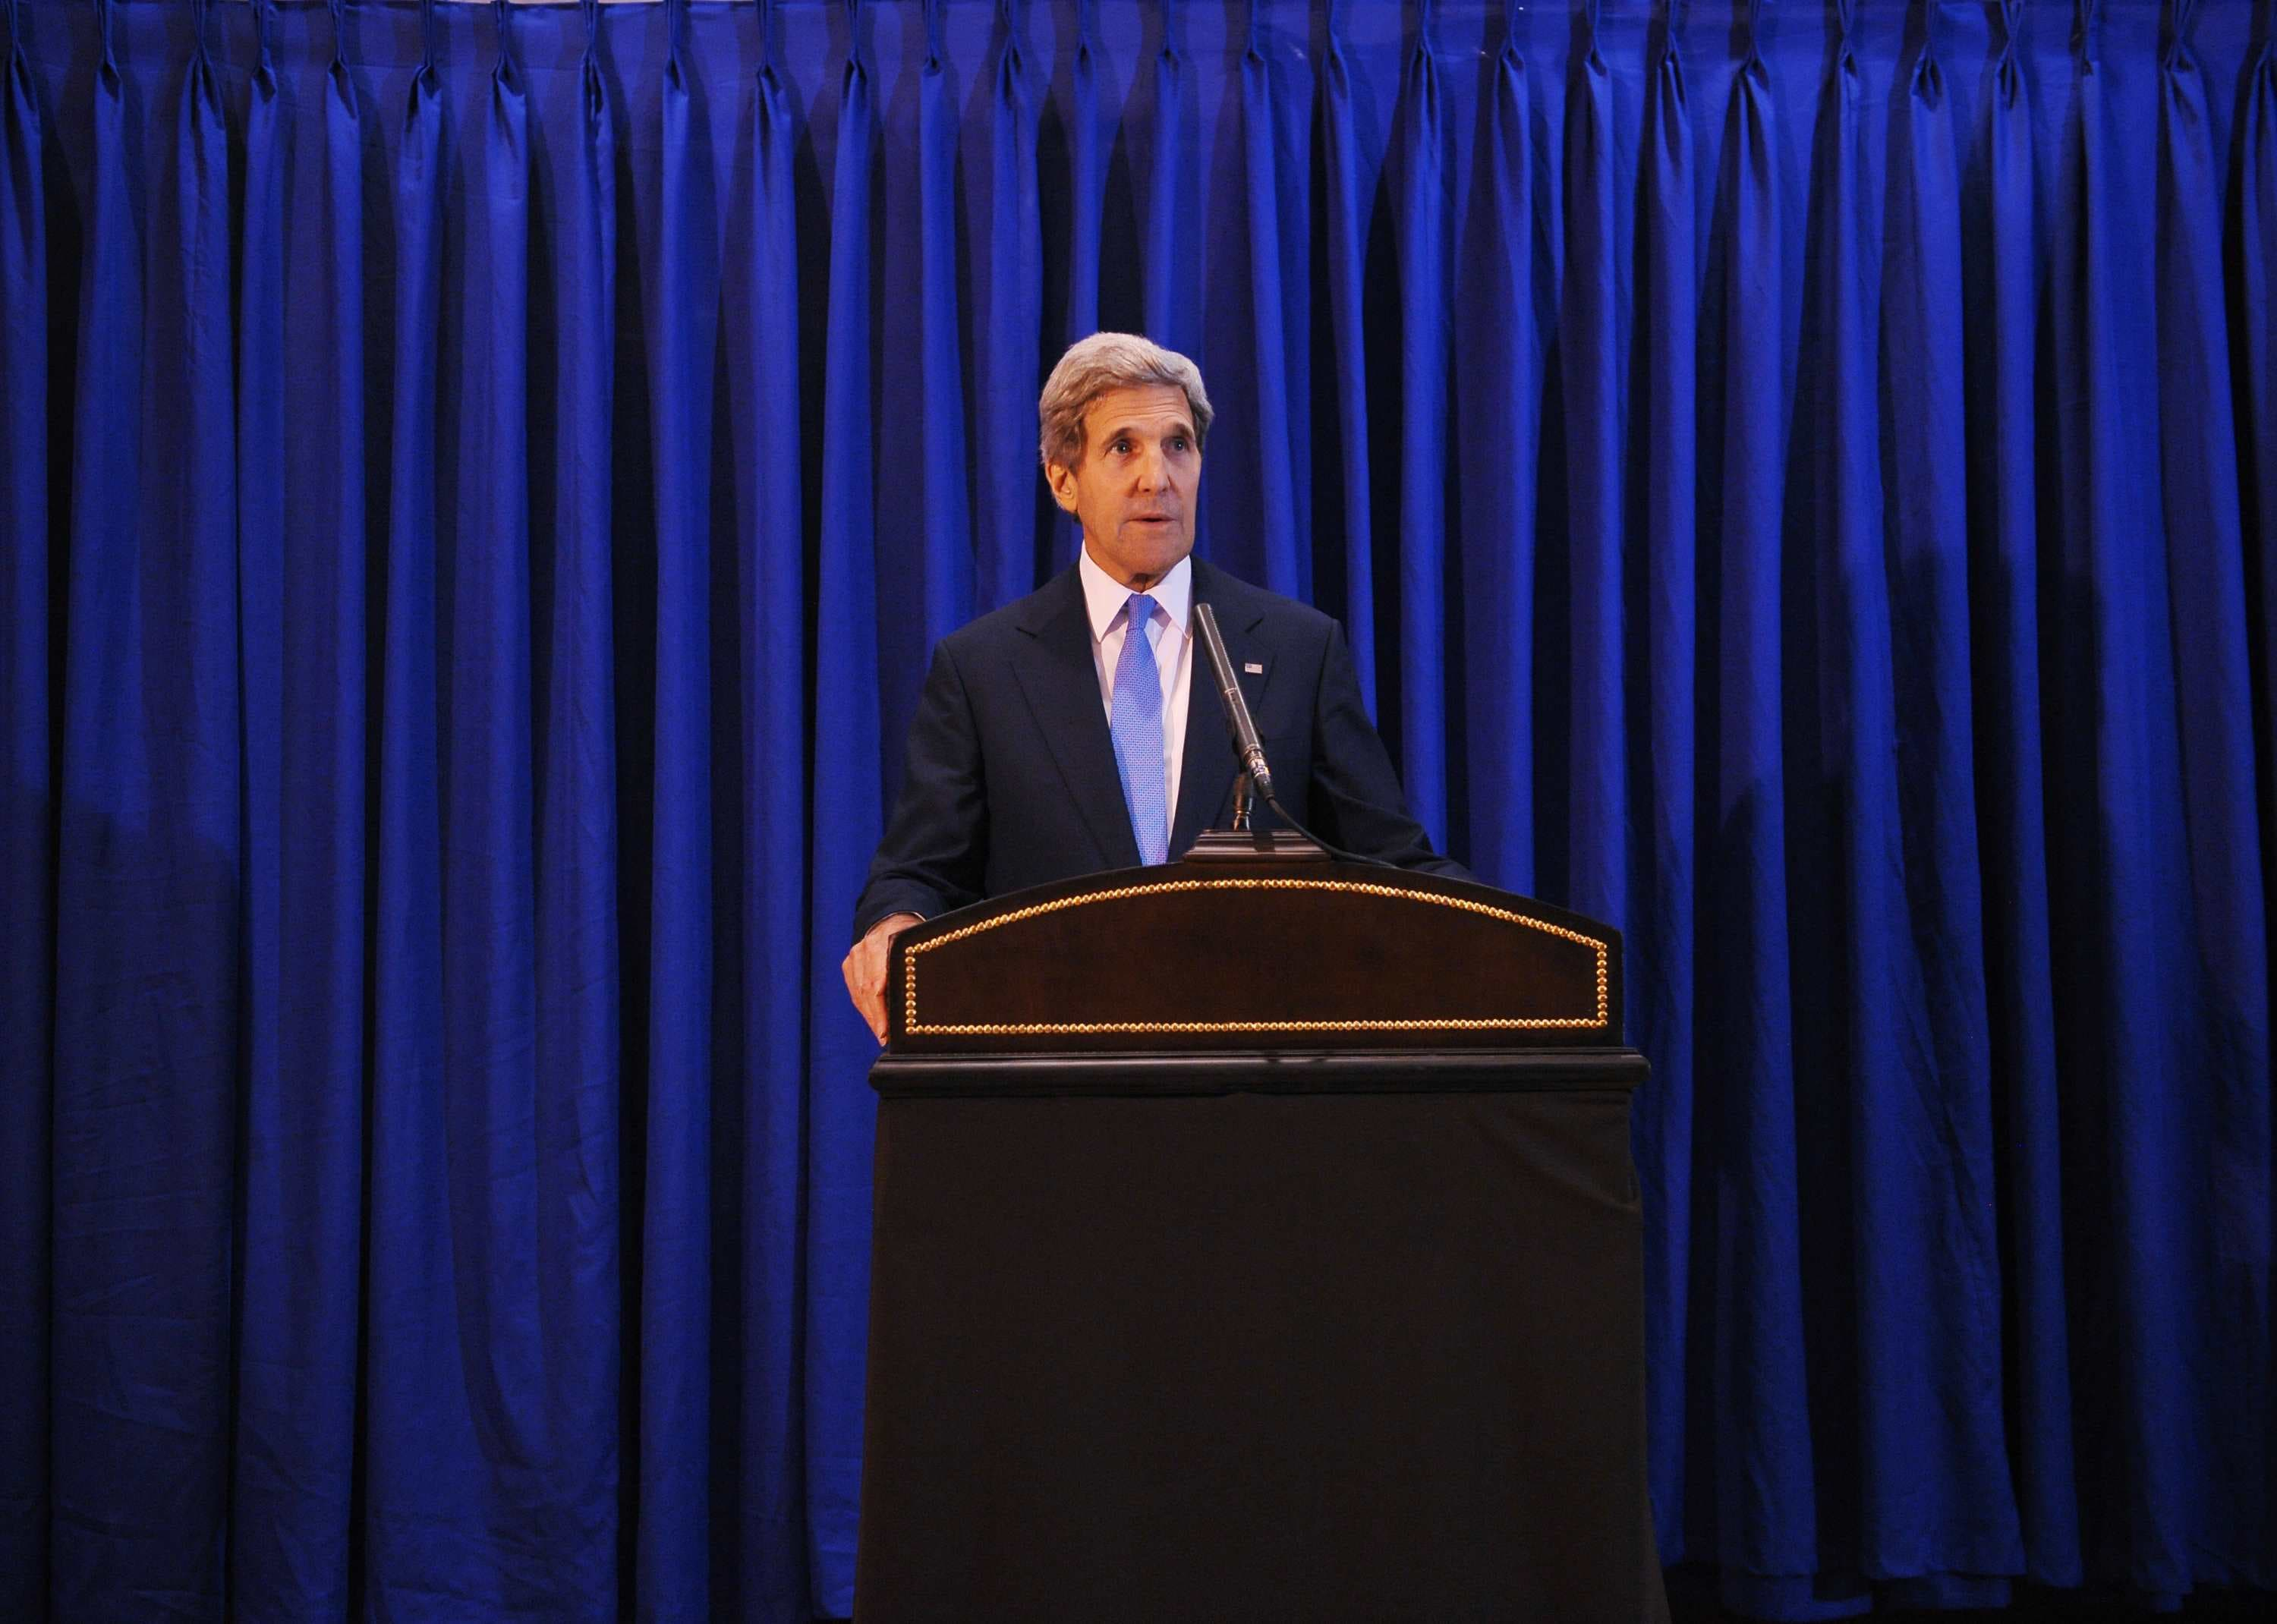 US Secretary of State John Kerry speaks during a press conference at Queen Alia International Airport on July 19, 2013 in the Jordanian capital Amman. (Source: AFP/POOL/MANDEL NGAN)